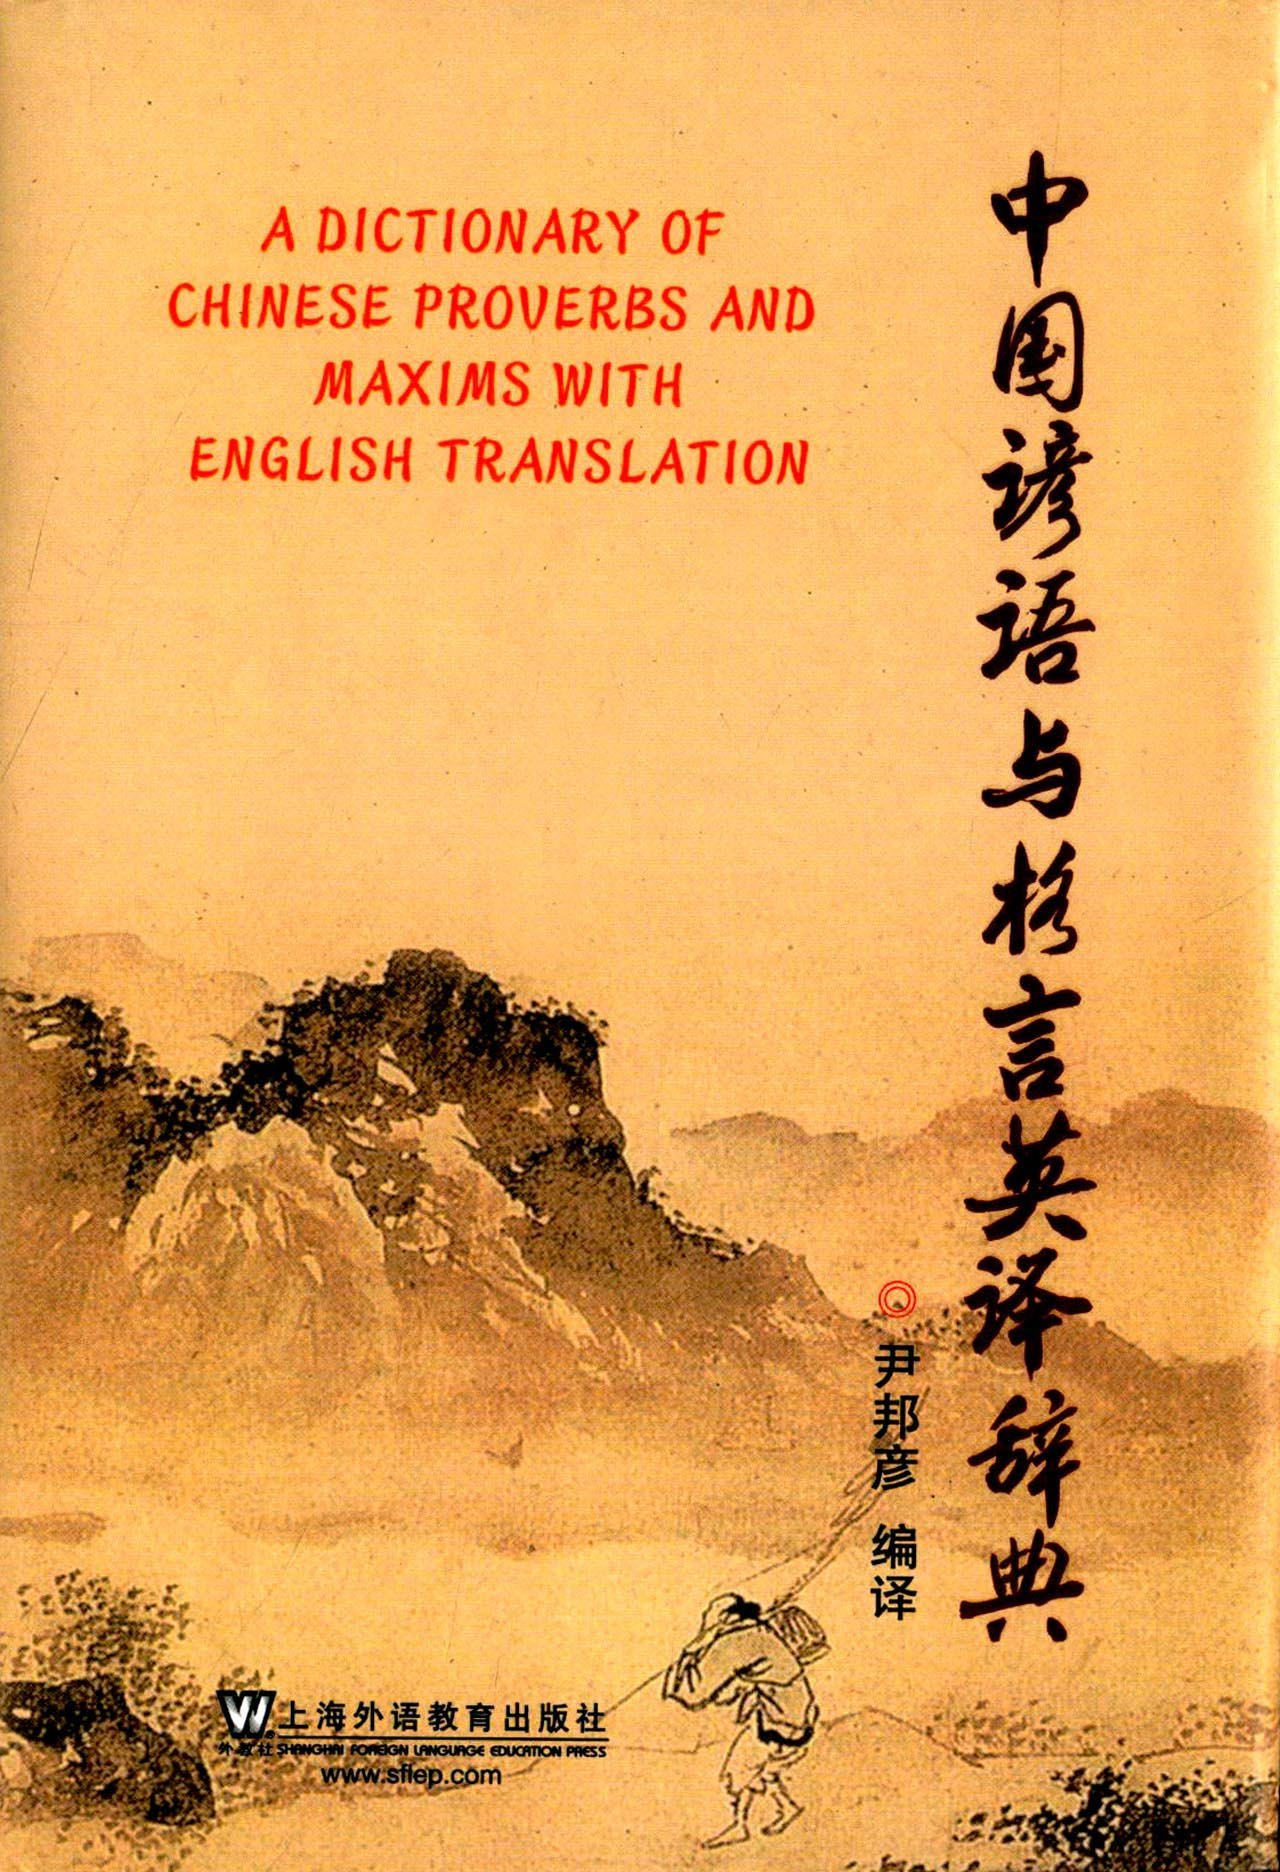 A Dictionary of Chinese Proverbs and Maxims with English Translation